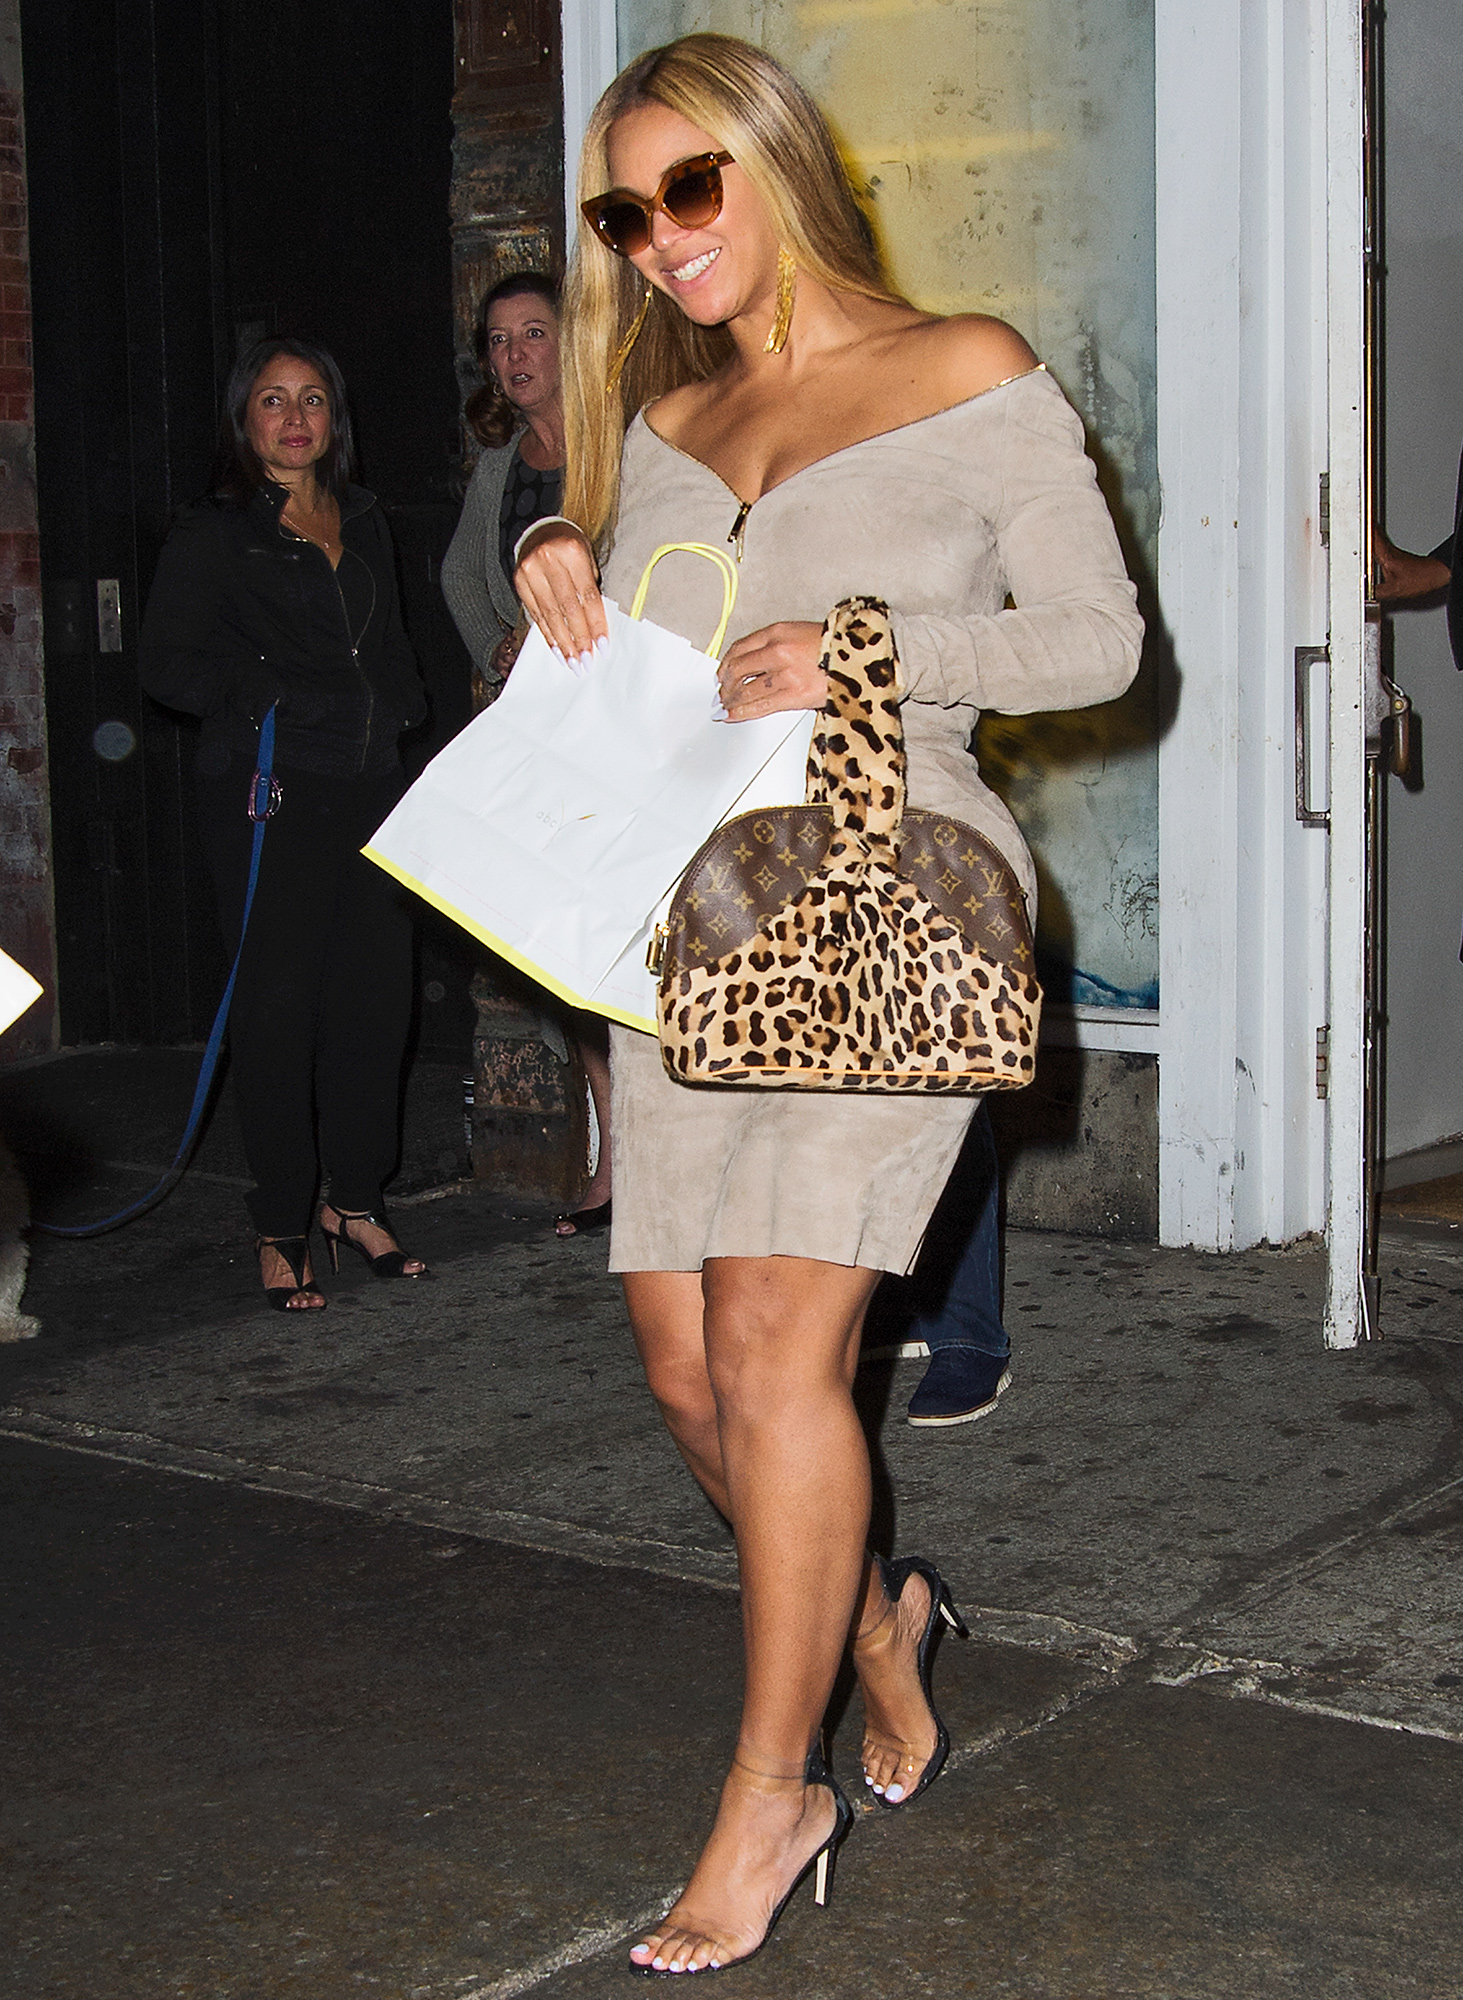 Beyonce is all smiles as she leaves ABC kitchen with her husband Jay-Z in NYC